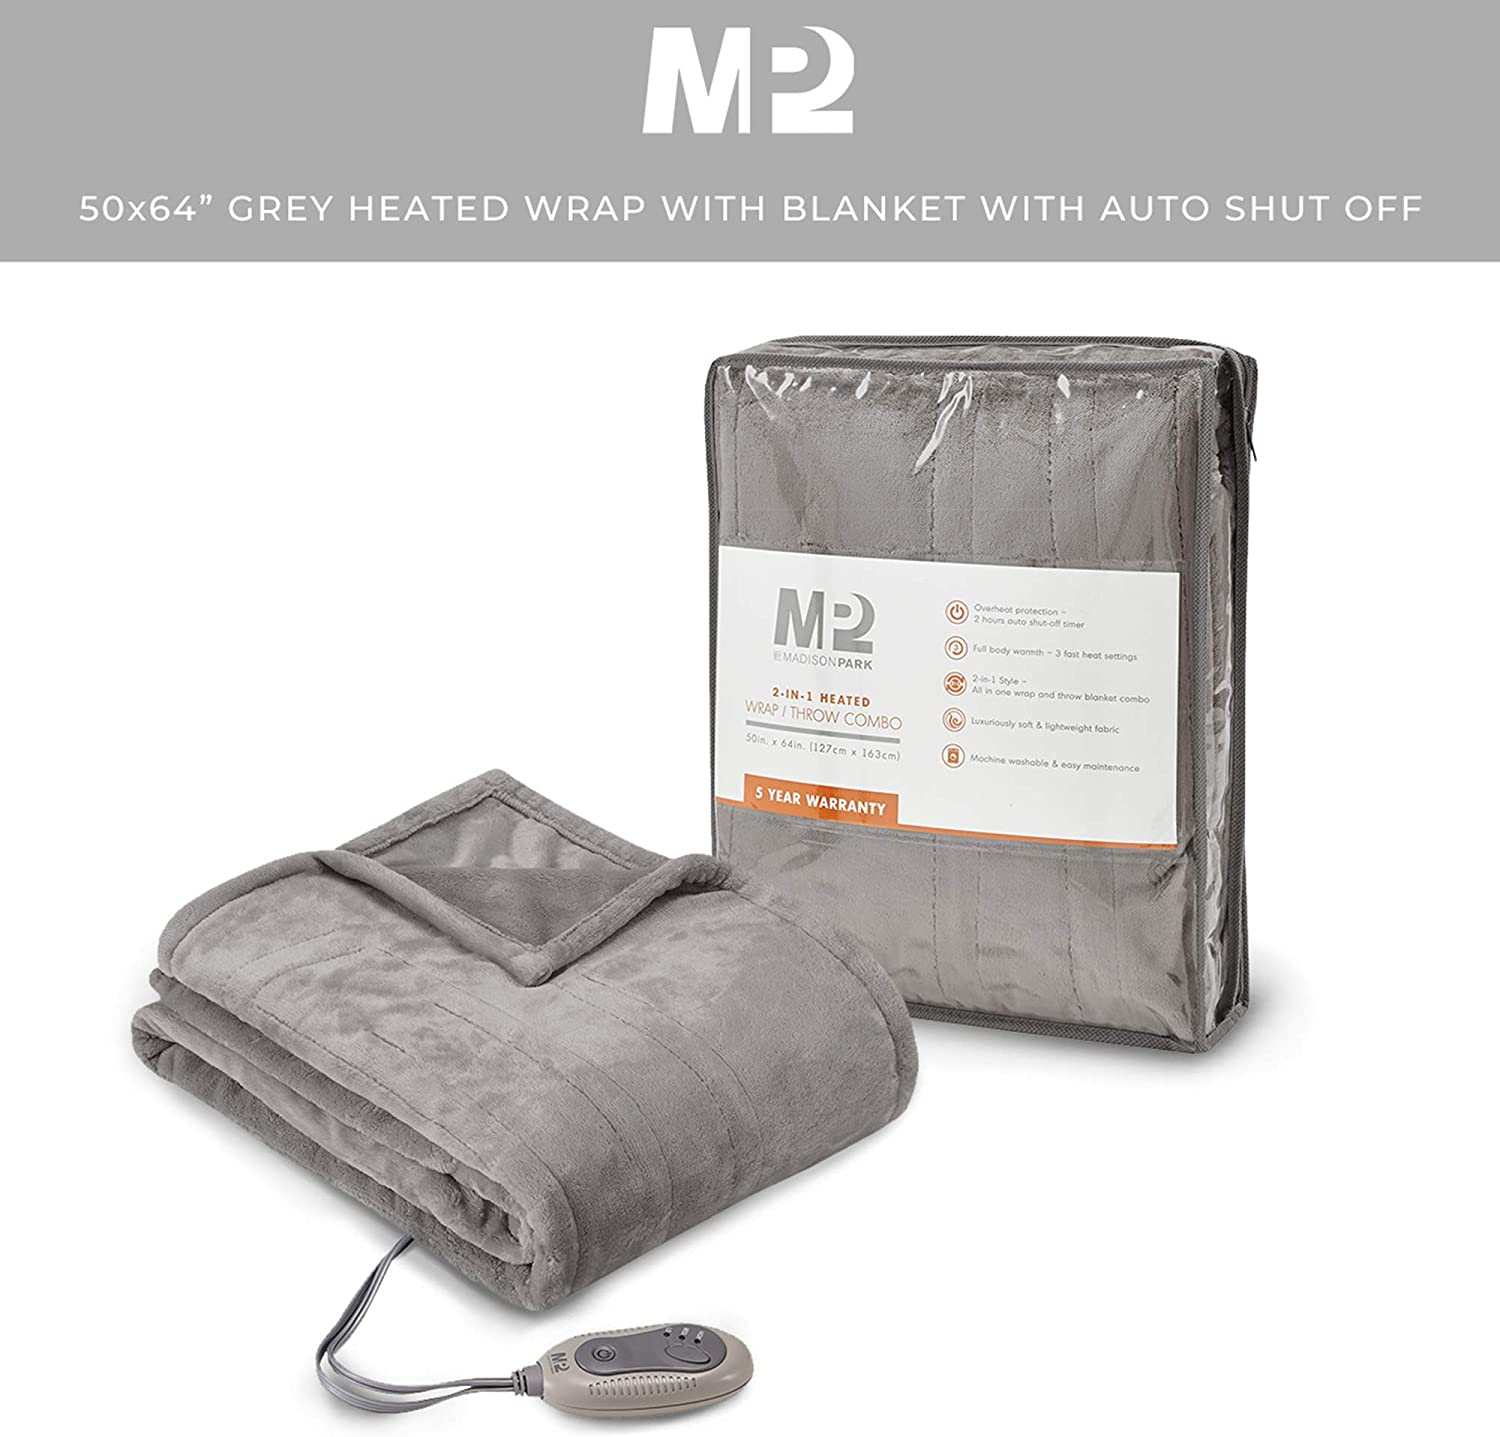 3 Heating Settings /& 2 Hours Auto Shut Off 50x 64 Grey MP2 Fleece Heated Blanket Wrap Shawl Wearable Electric Poncho Throw with Buttons